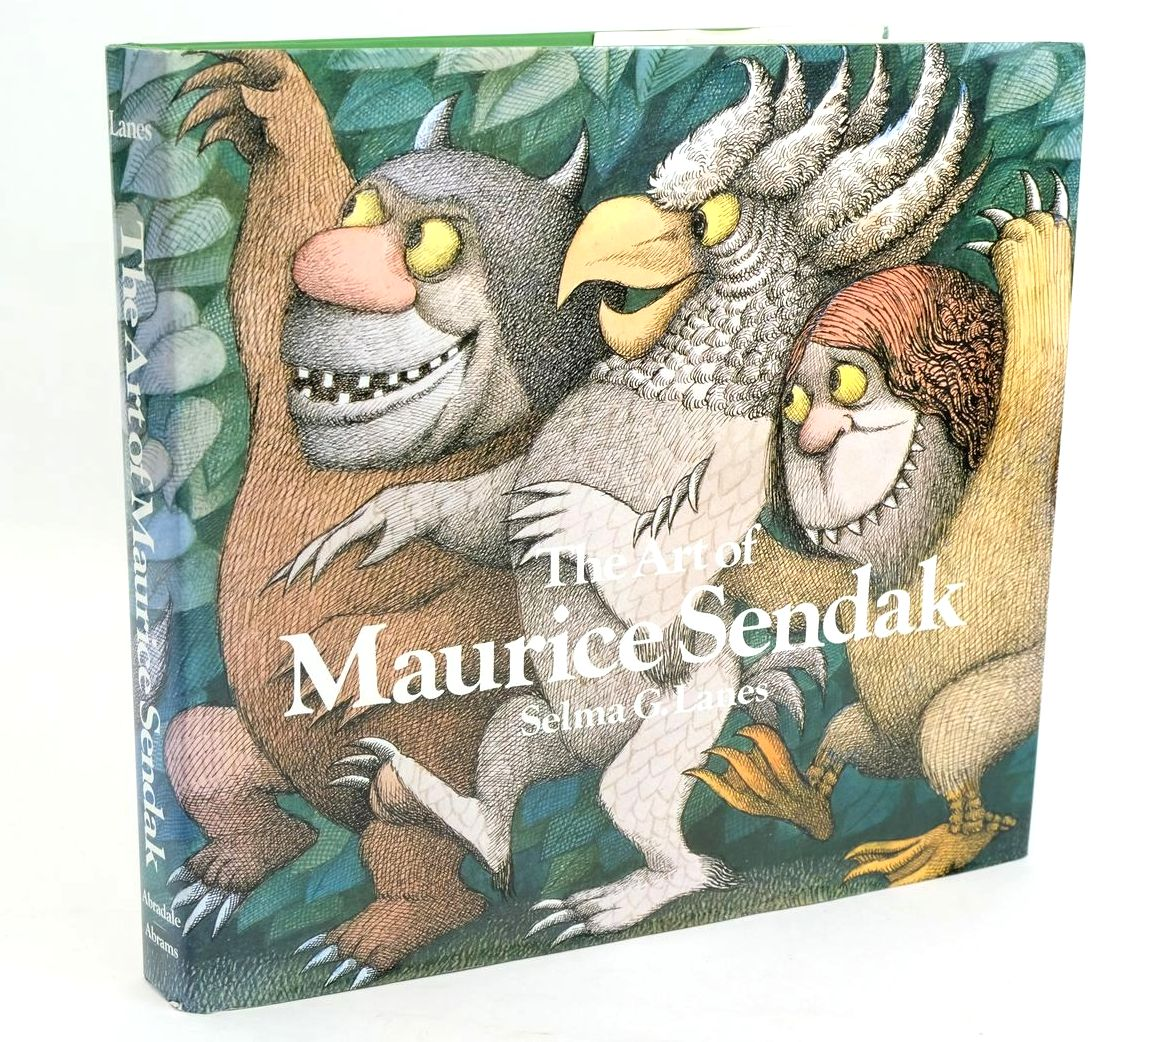 Photo of THE ART OF MAURICE SENDAK written by Lanes, Selma G. illustrated by Sendak, Maurice published by Harry N. Abrams (STOCK CODE: 1319491)  for sale by Stella & Rose's Books